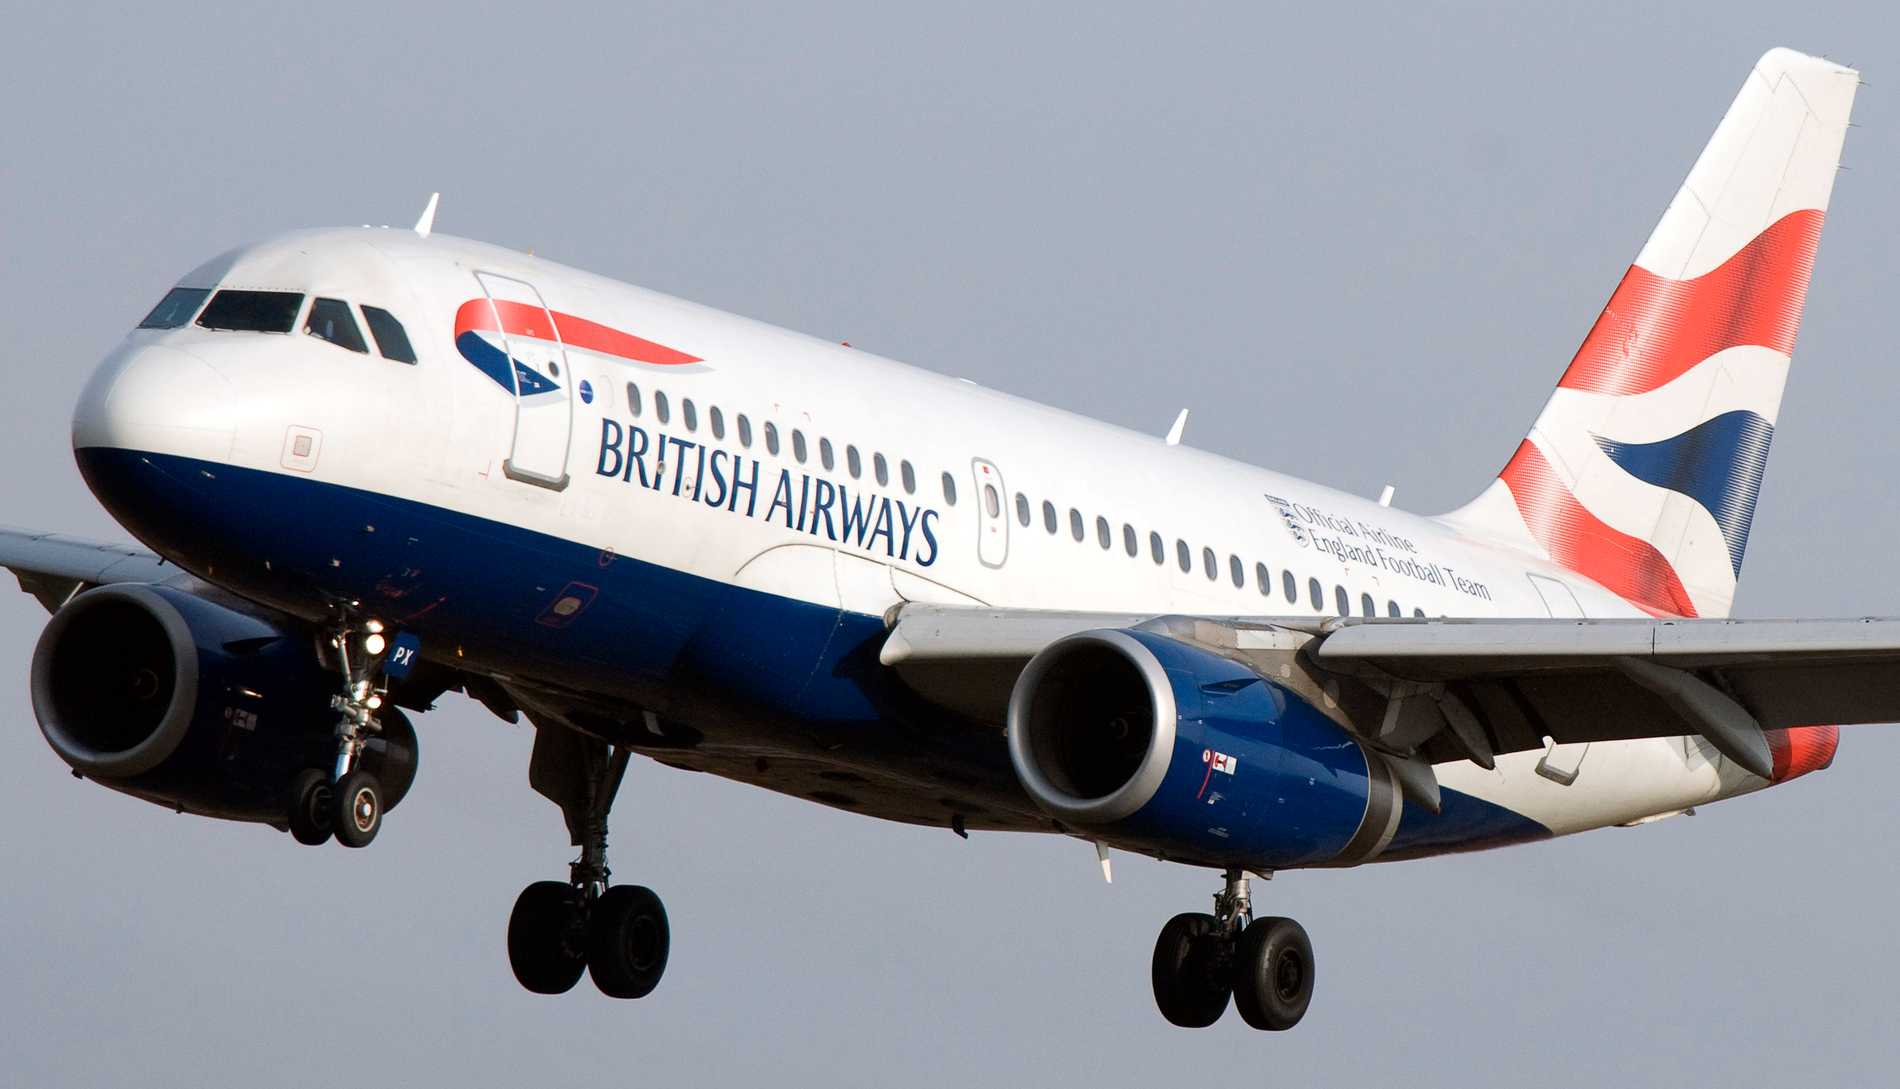 A British Airways Airbus A319 on its way to land at Arlanda Airport.  Photo gallery.